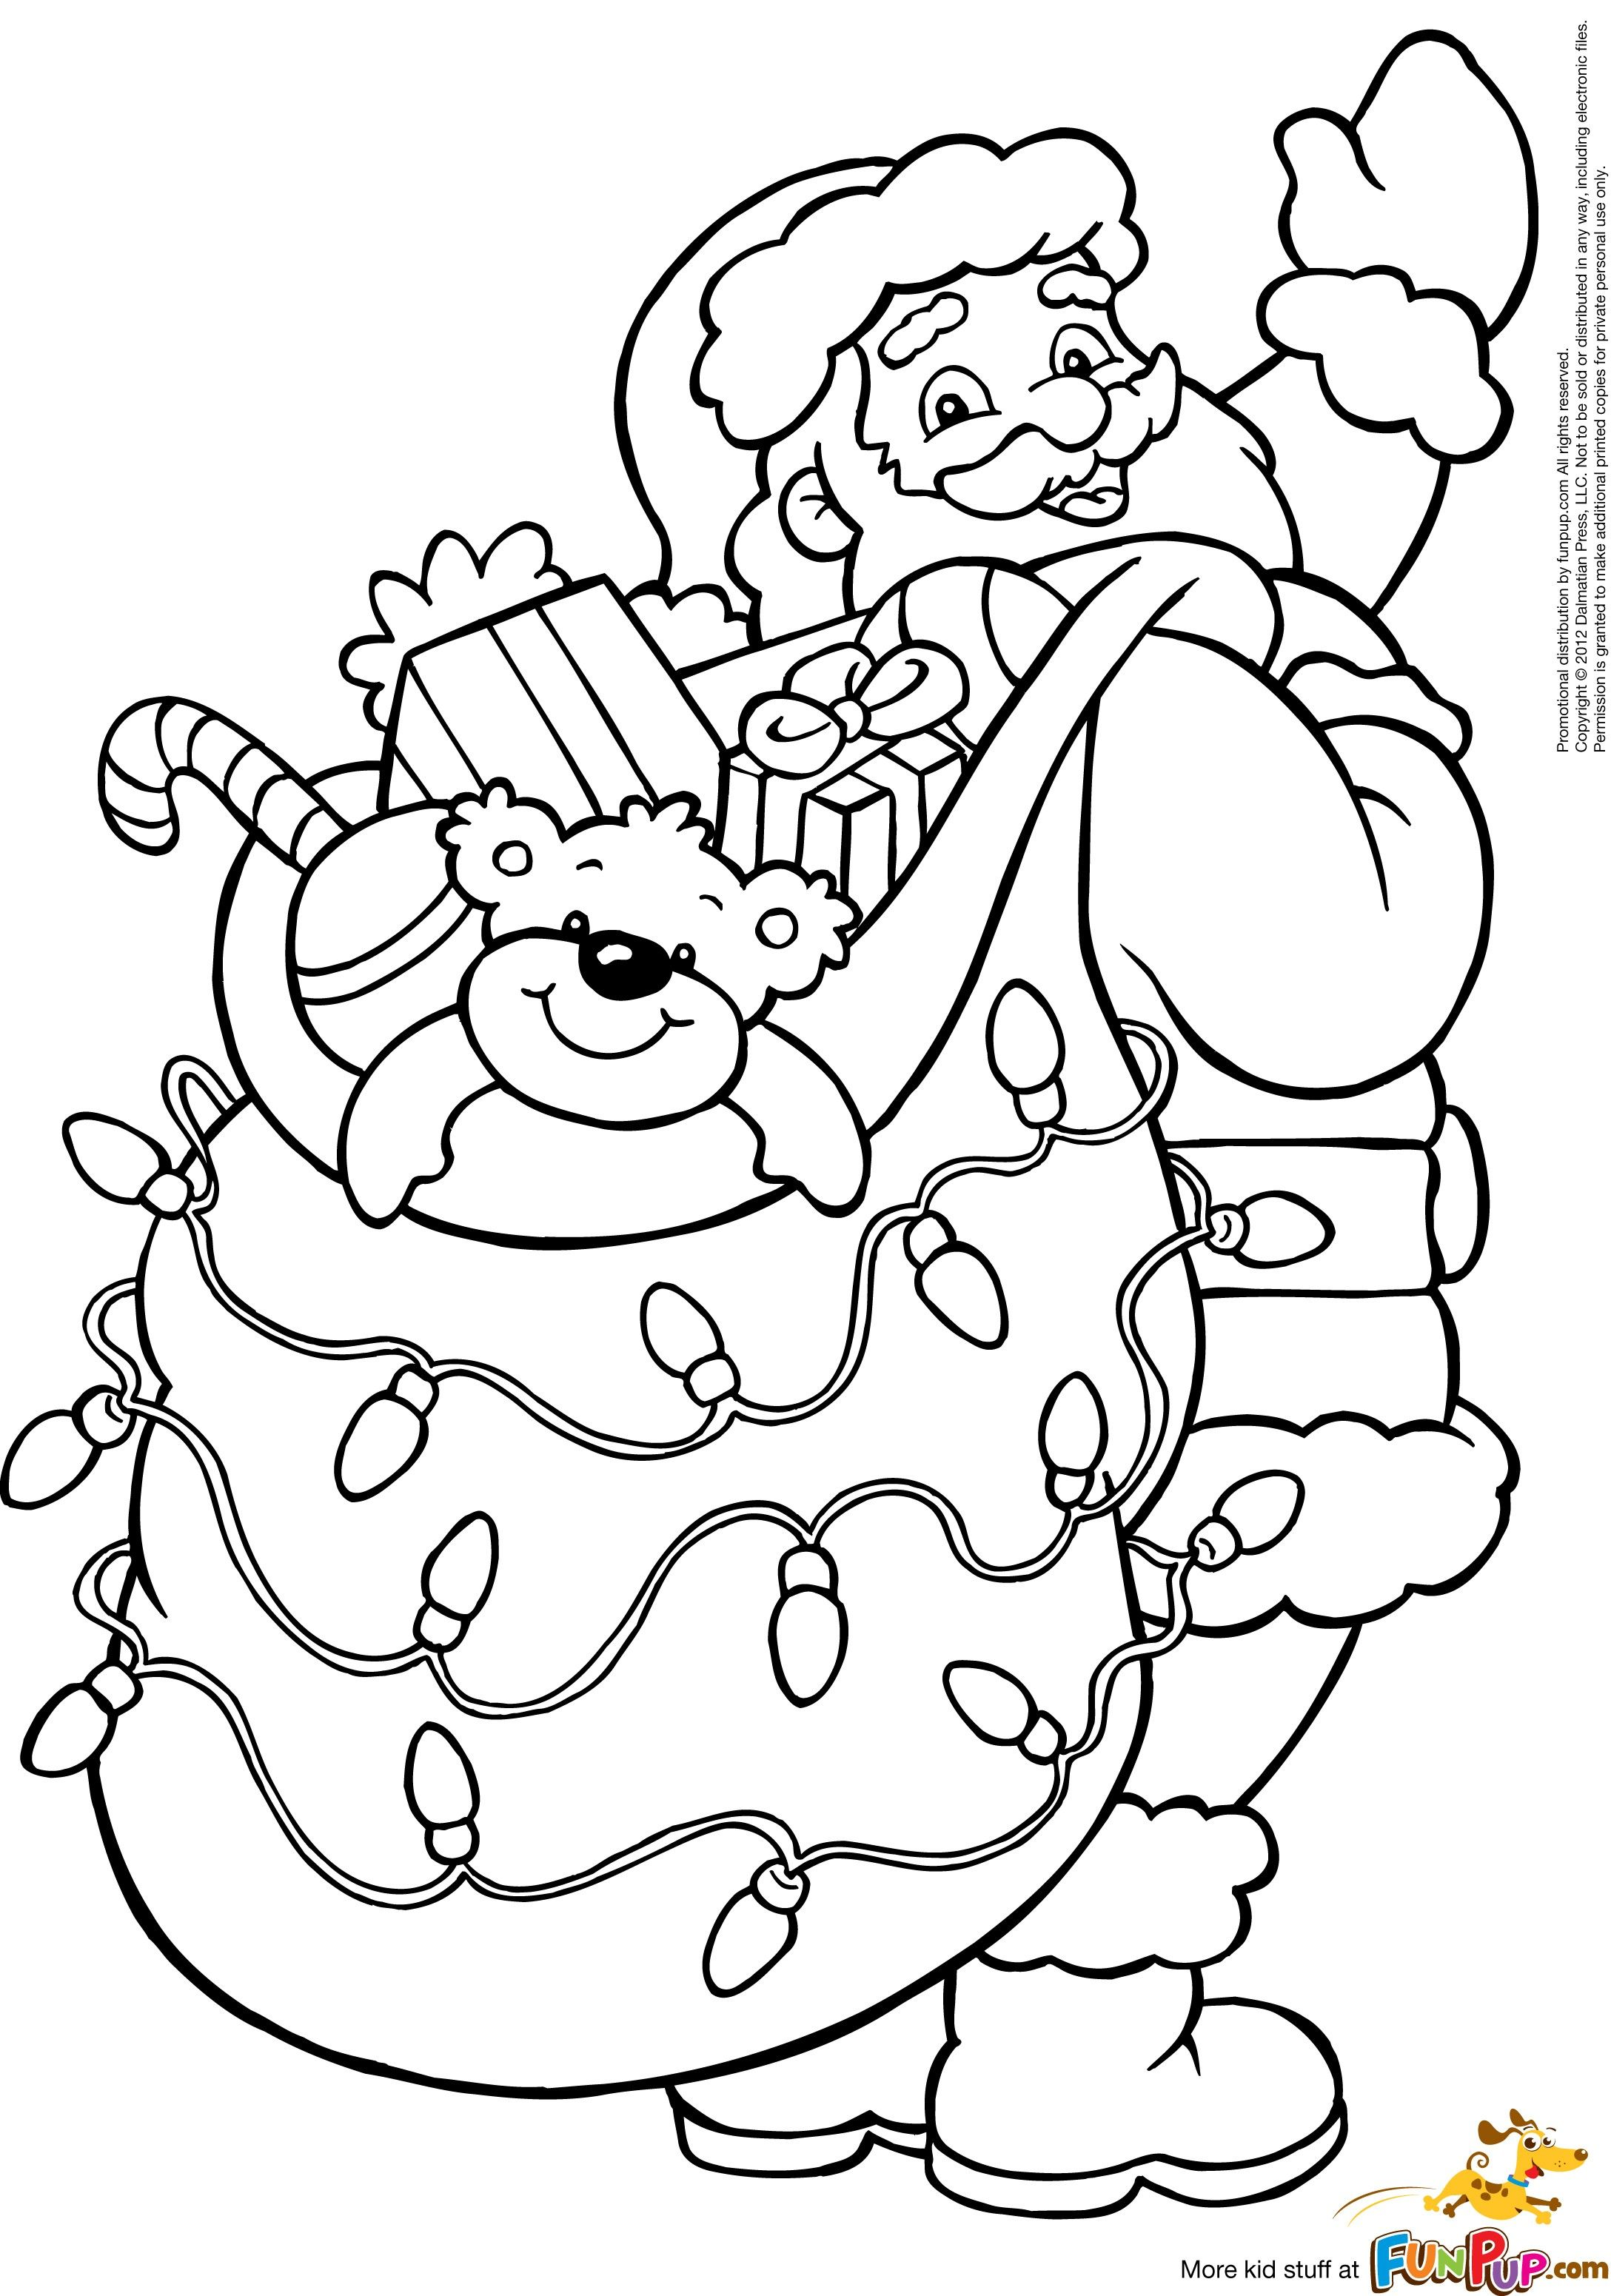 christmas coloring pages santa claus - Xmas Coloring Pages